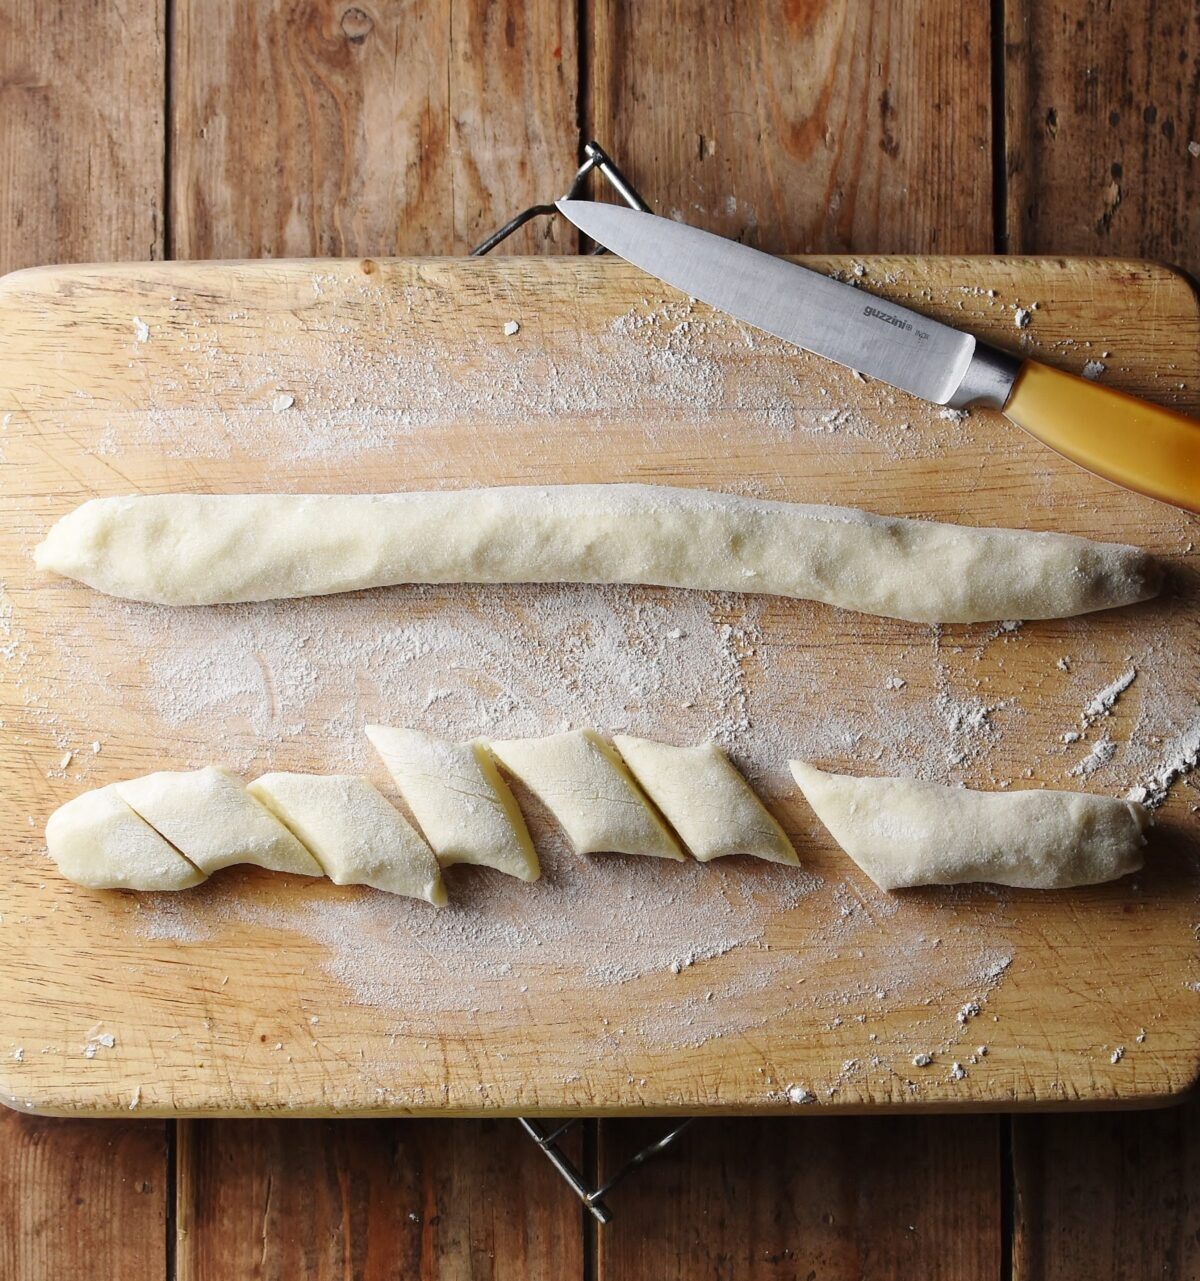 2 sausage shaped dough parts, one of them cut into pieces, on top of floured wooden board with small yellow knife.